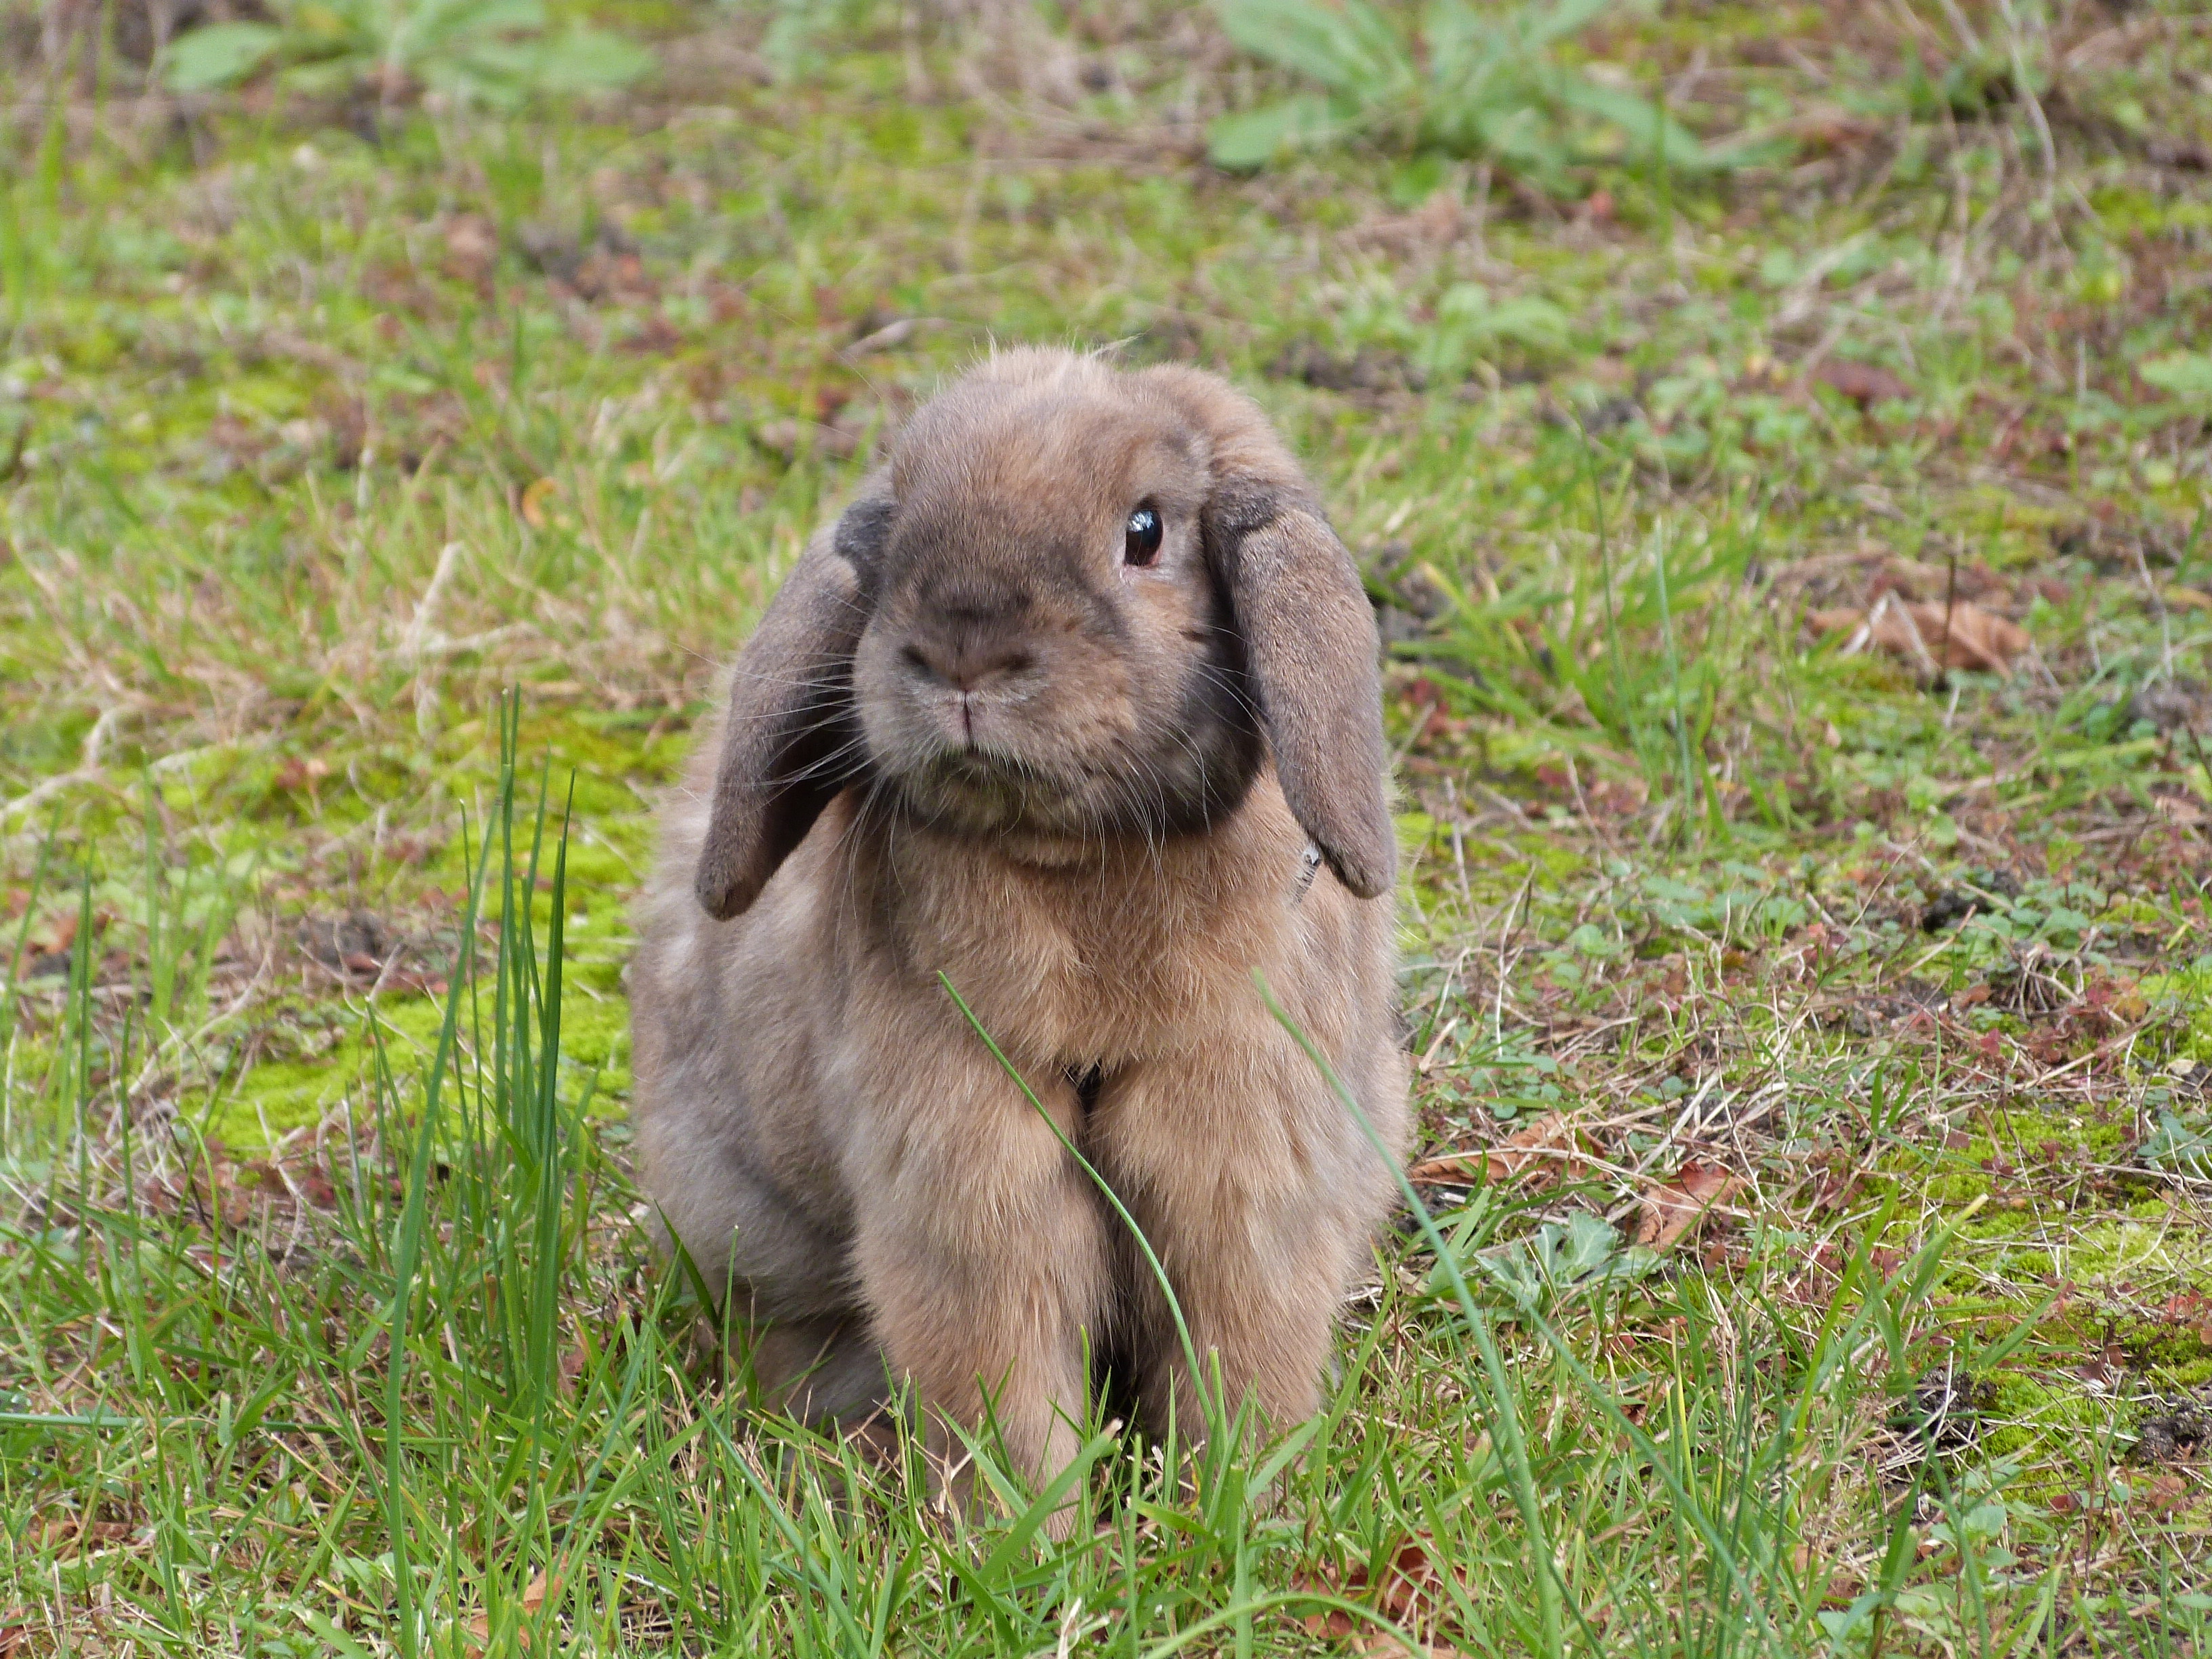 Chewy in my garden, Animal, Black, Brown, Bunny, HQ Photo